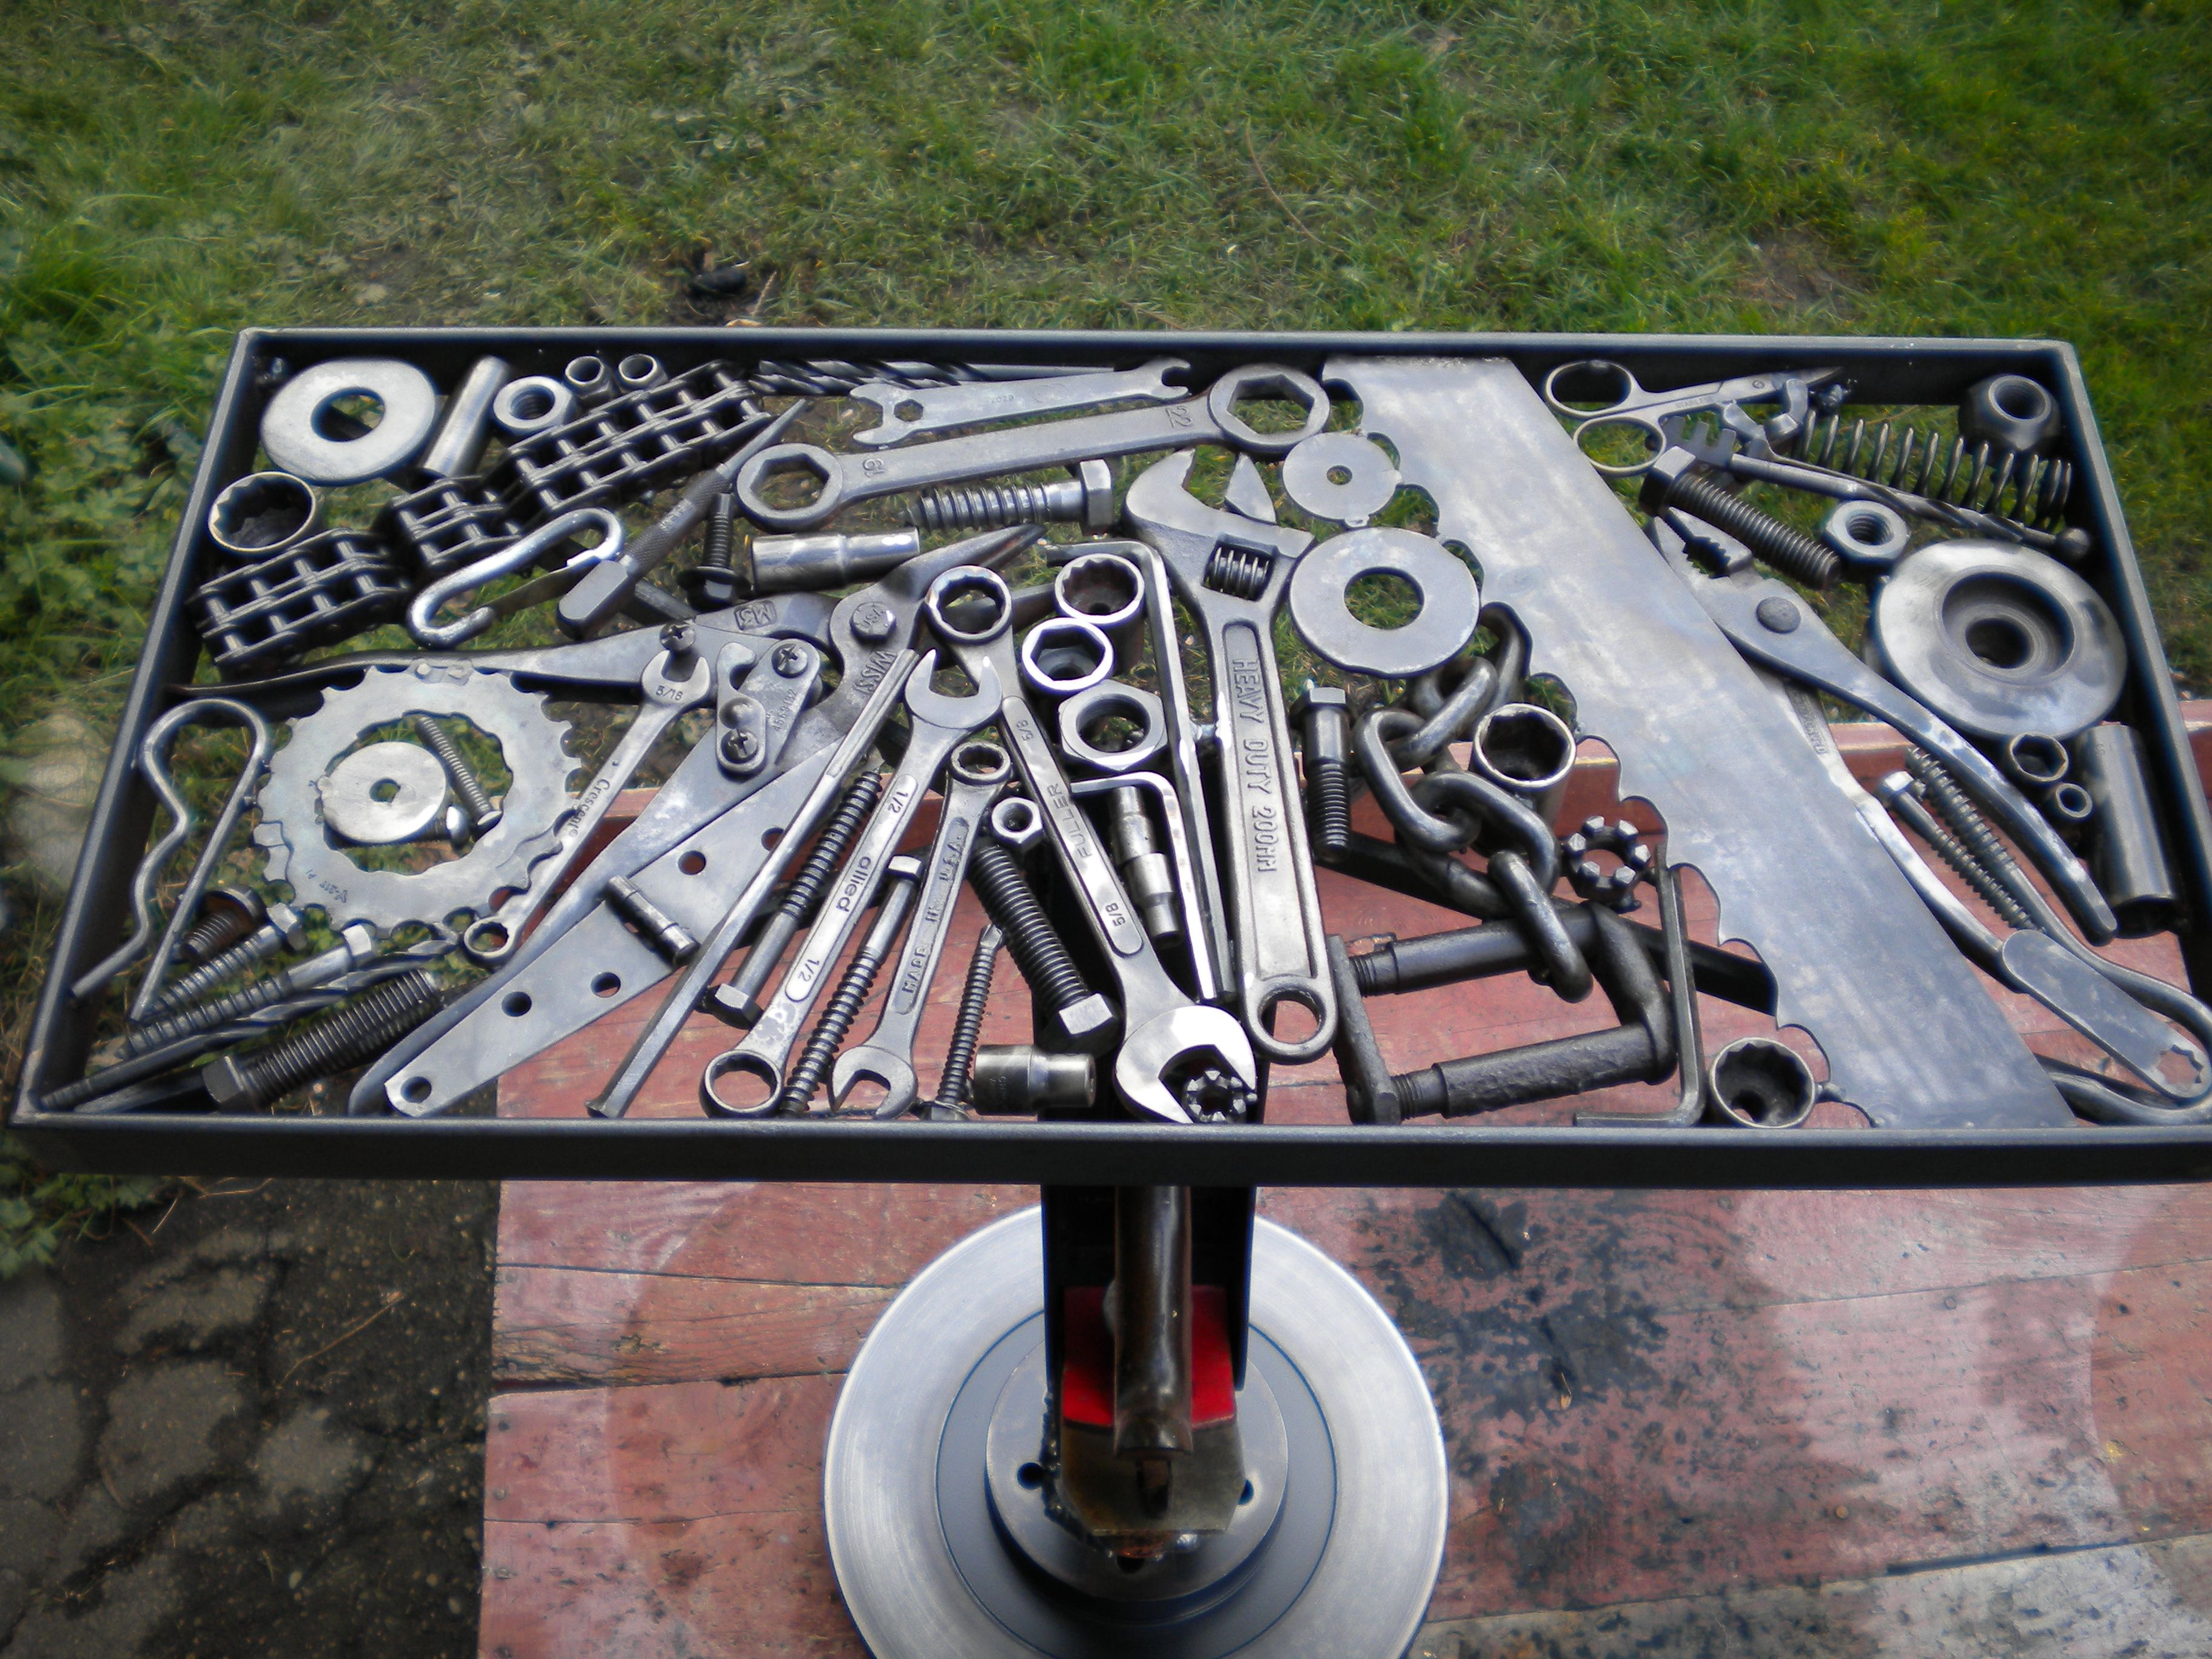 Welded Chain Art Miller Welding Projects Idea